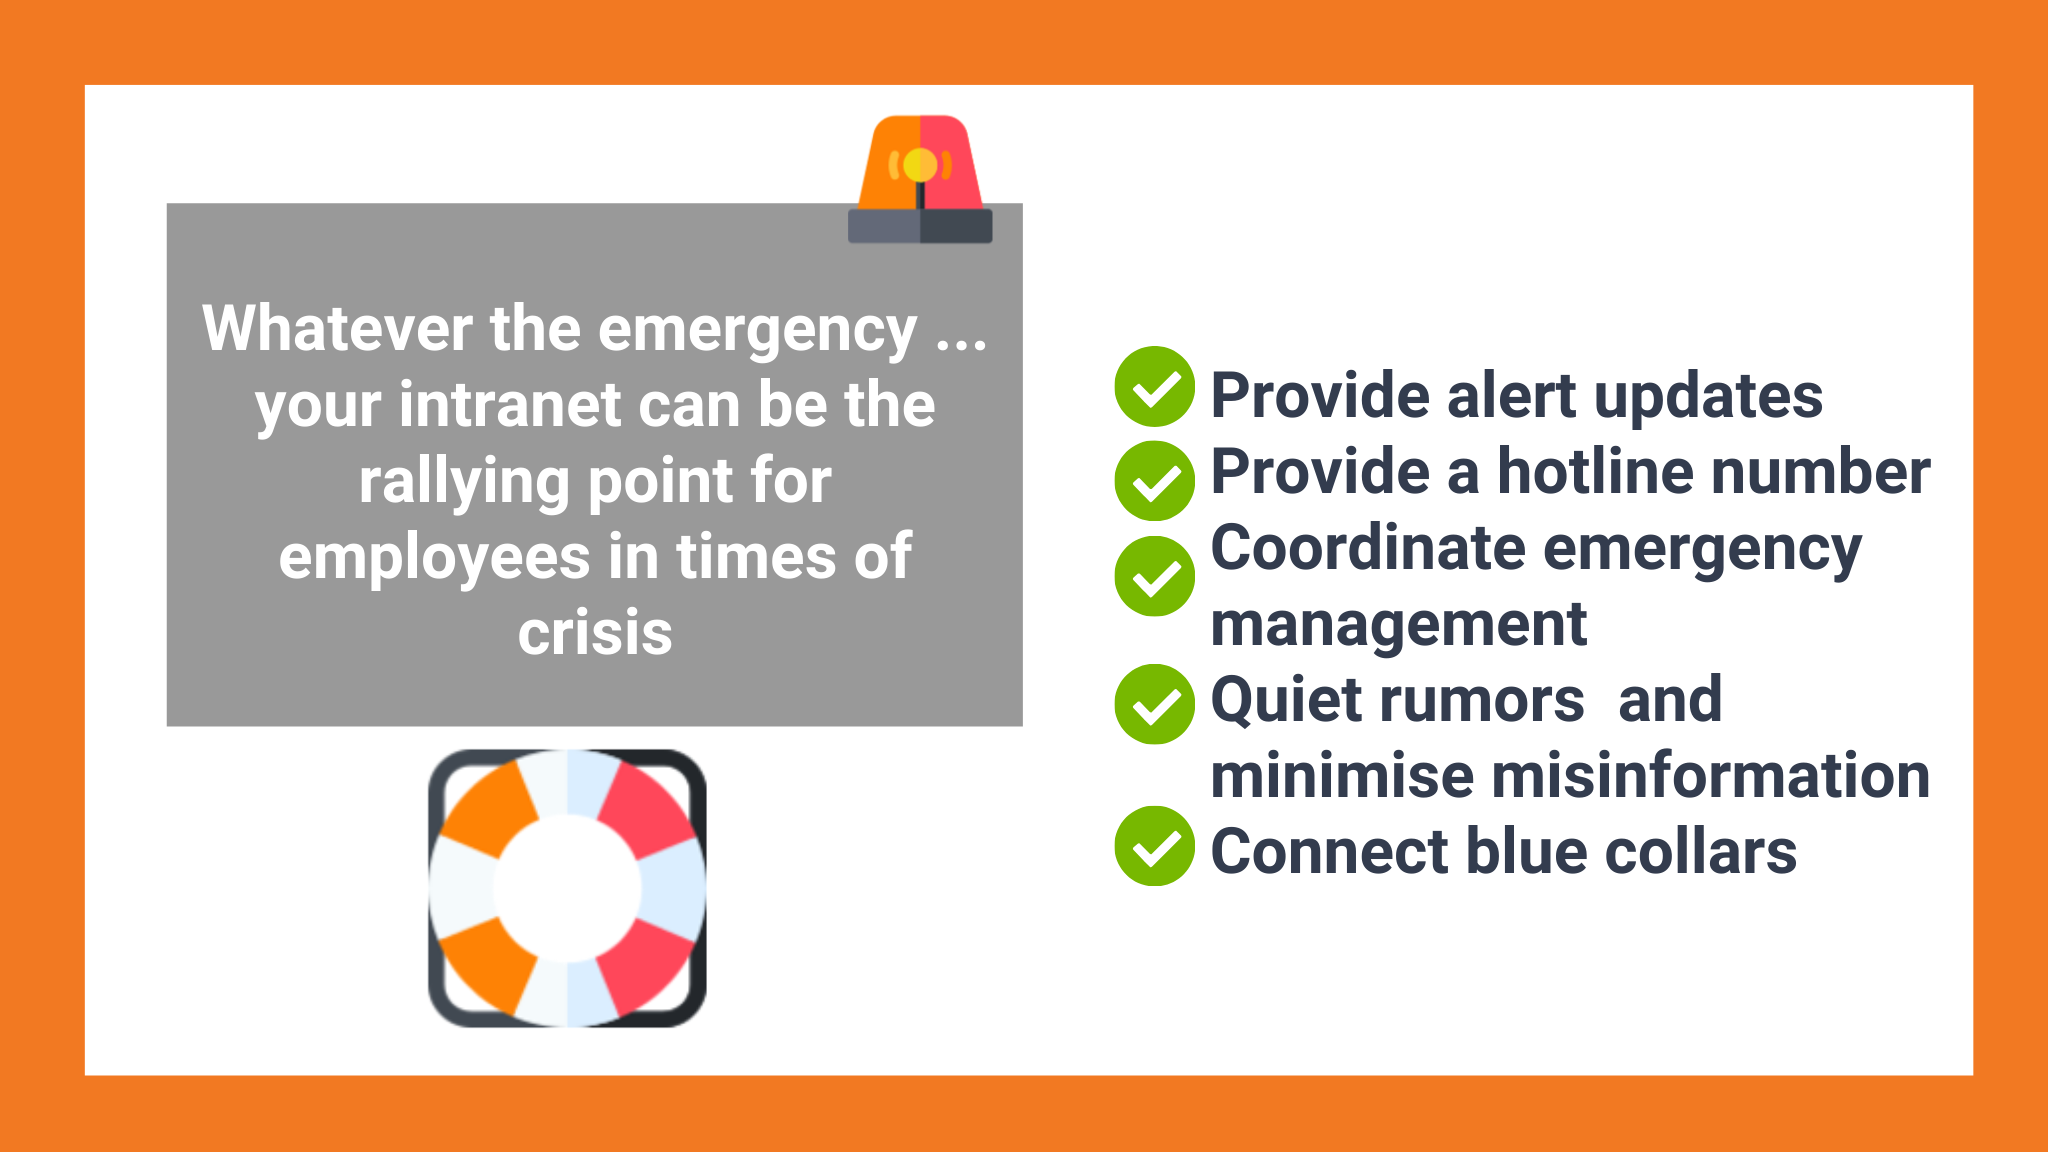 Intranet essentials for crisis communications